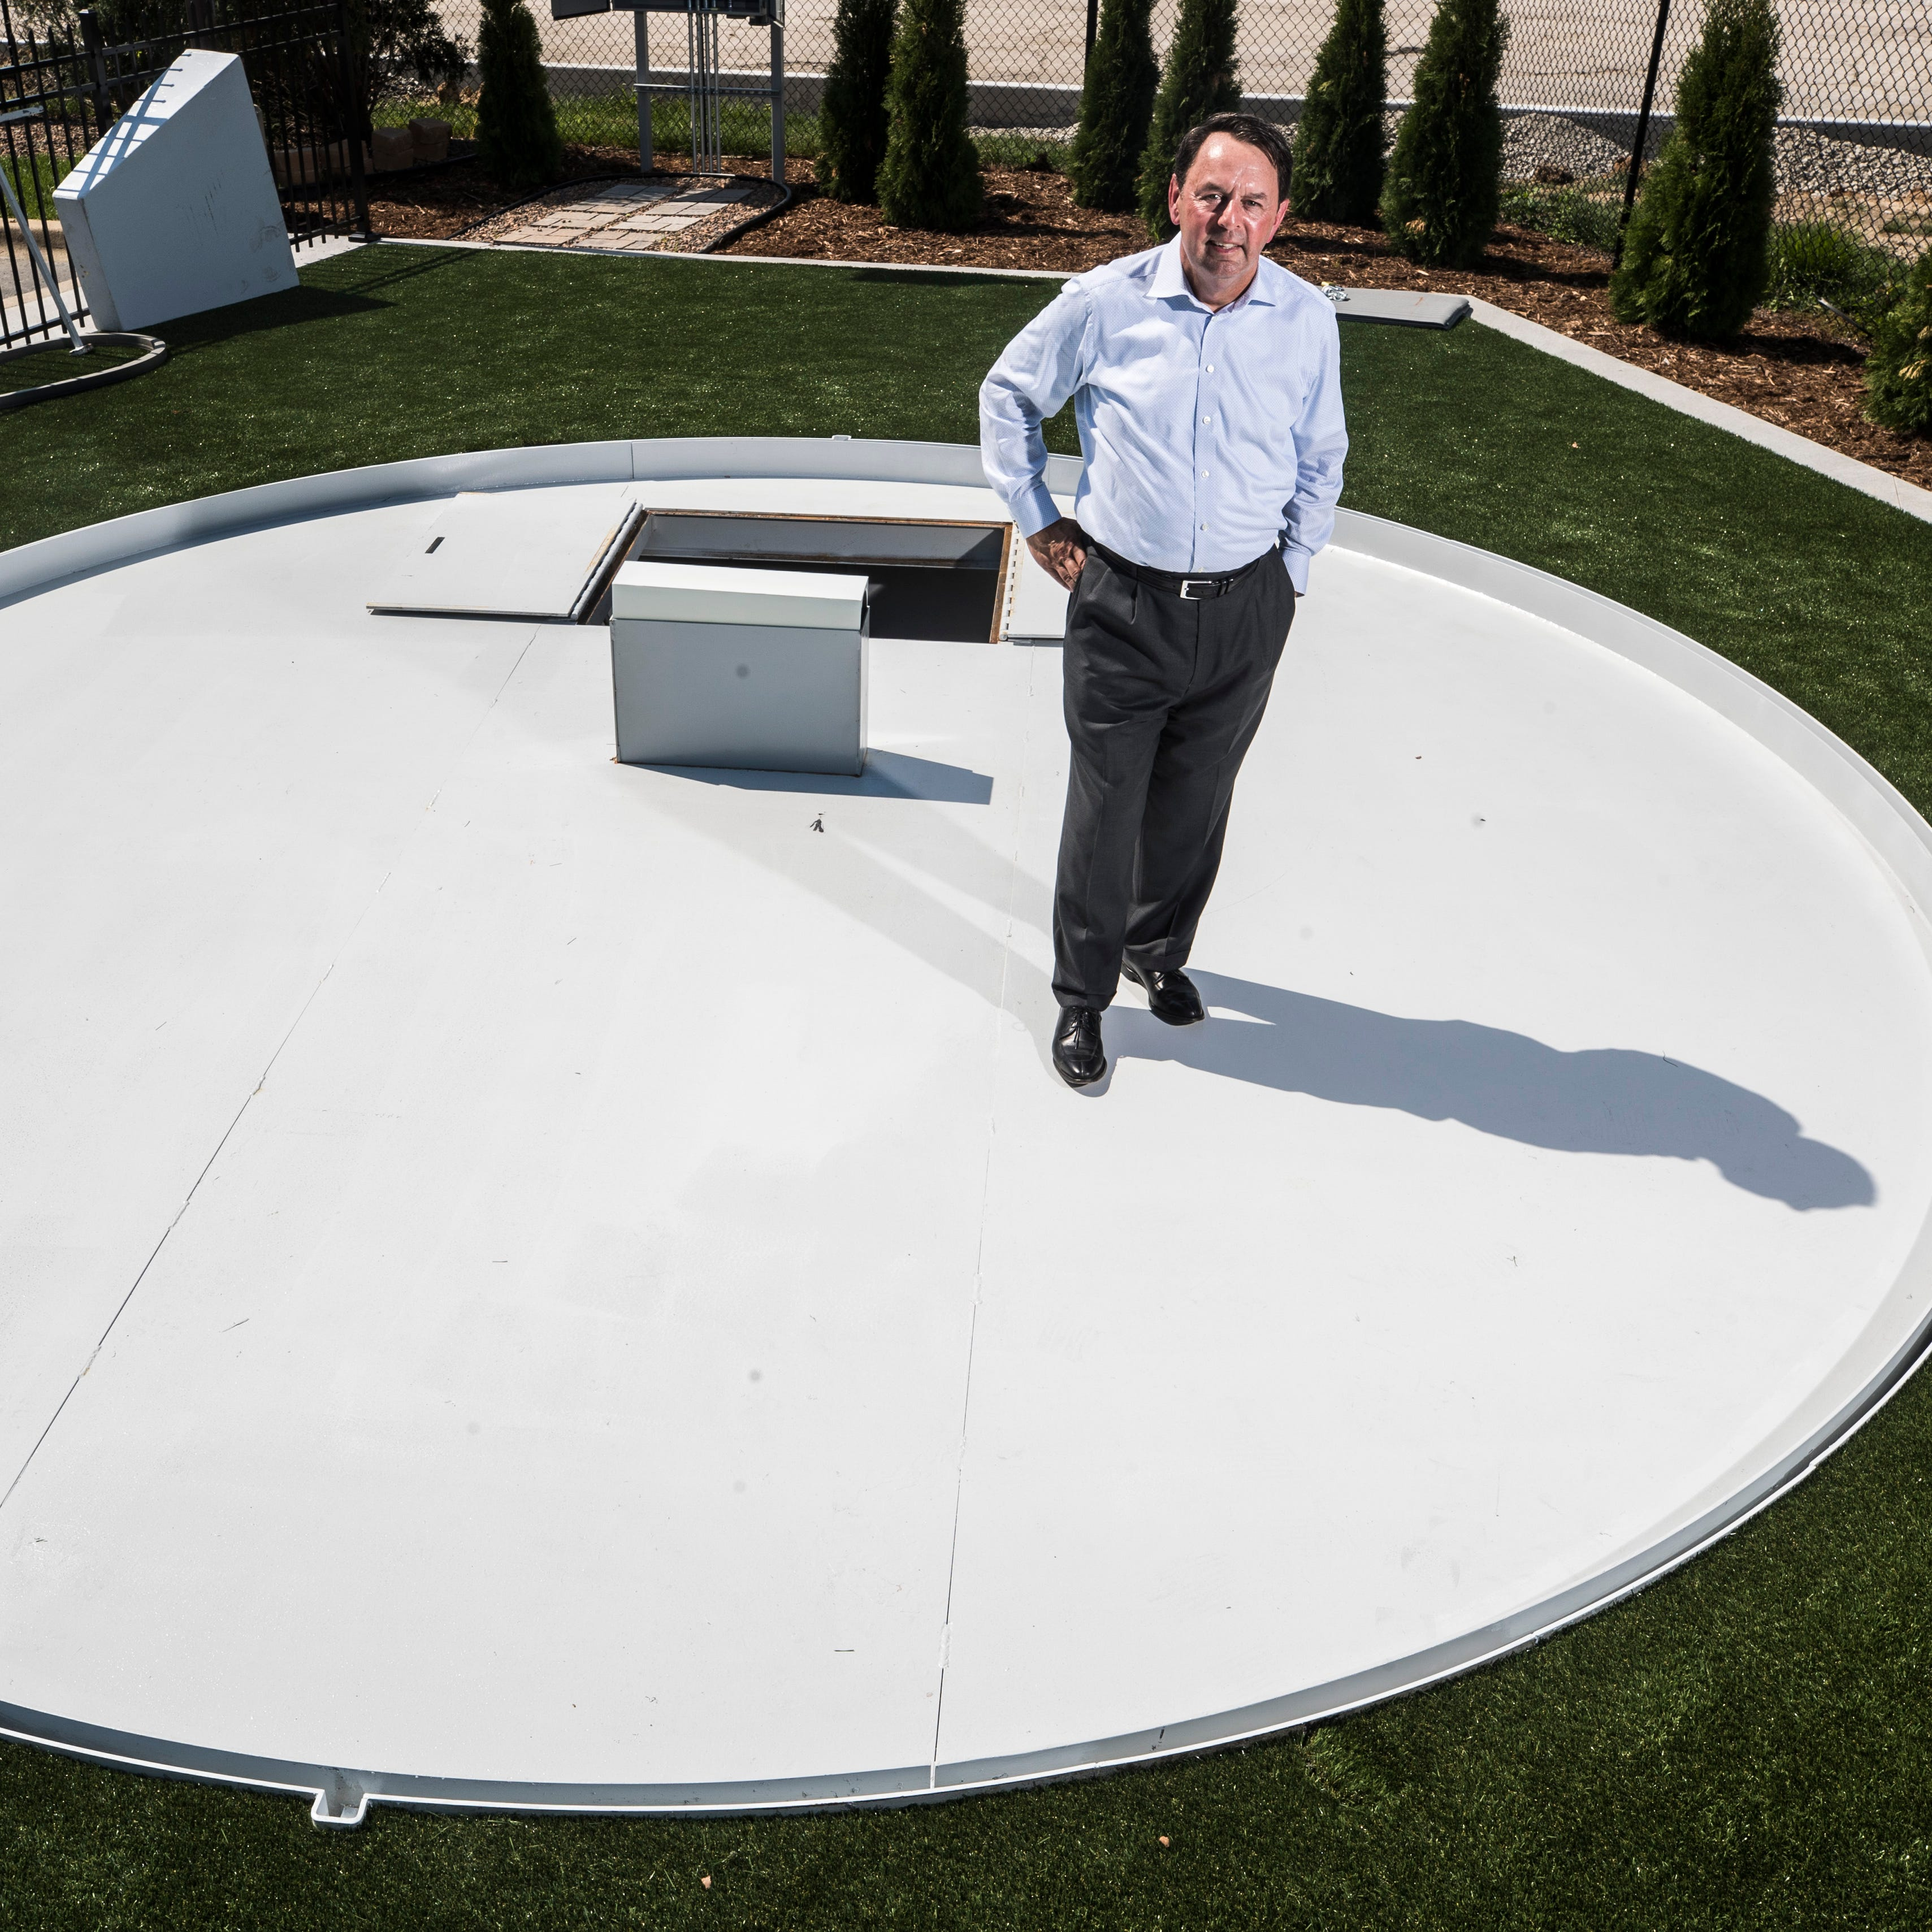 Former LouCity FC owner's invention solves problem of pitcher's mound